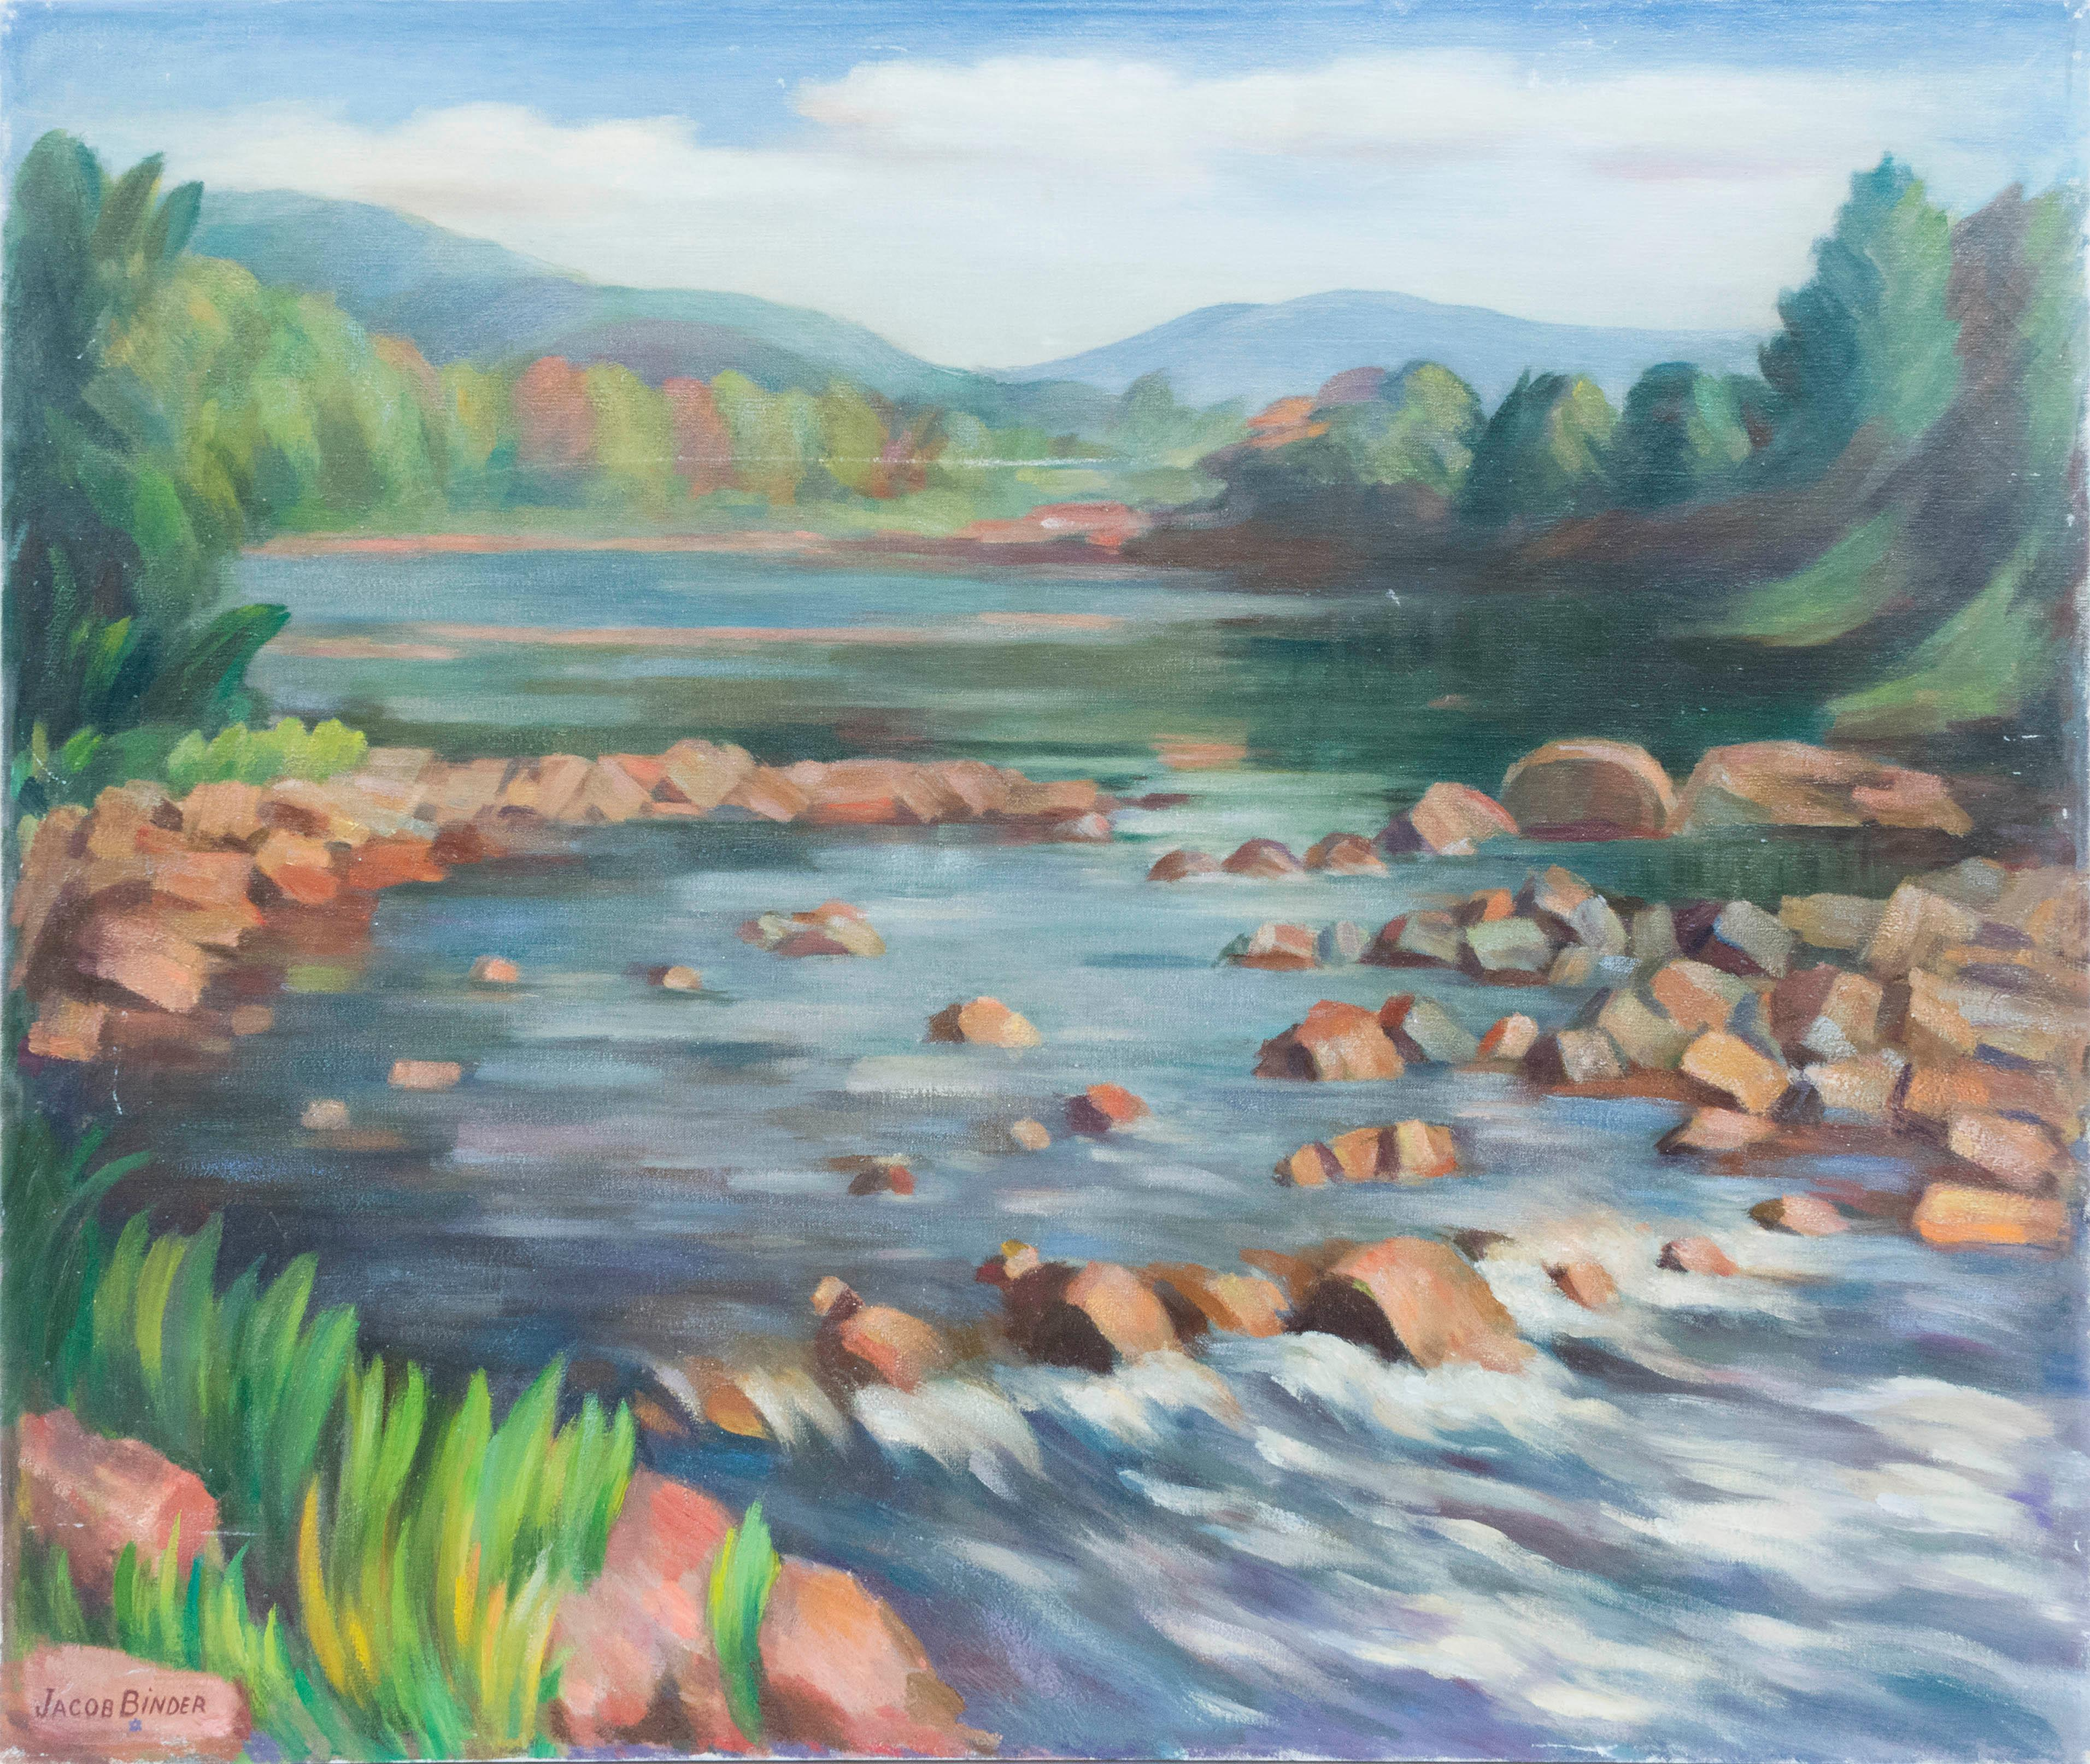 """JACOB BINDER, Massachusetts, 1887-1984, A forest stream and distant mountains., Oil on canvas, 30"""" x 36"""". Unframed."""